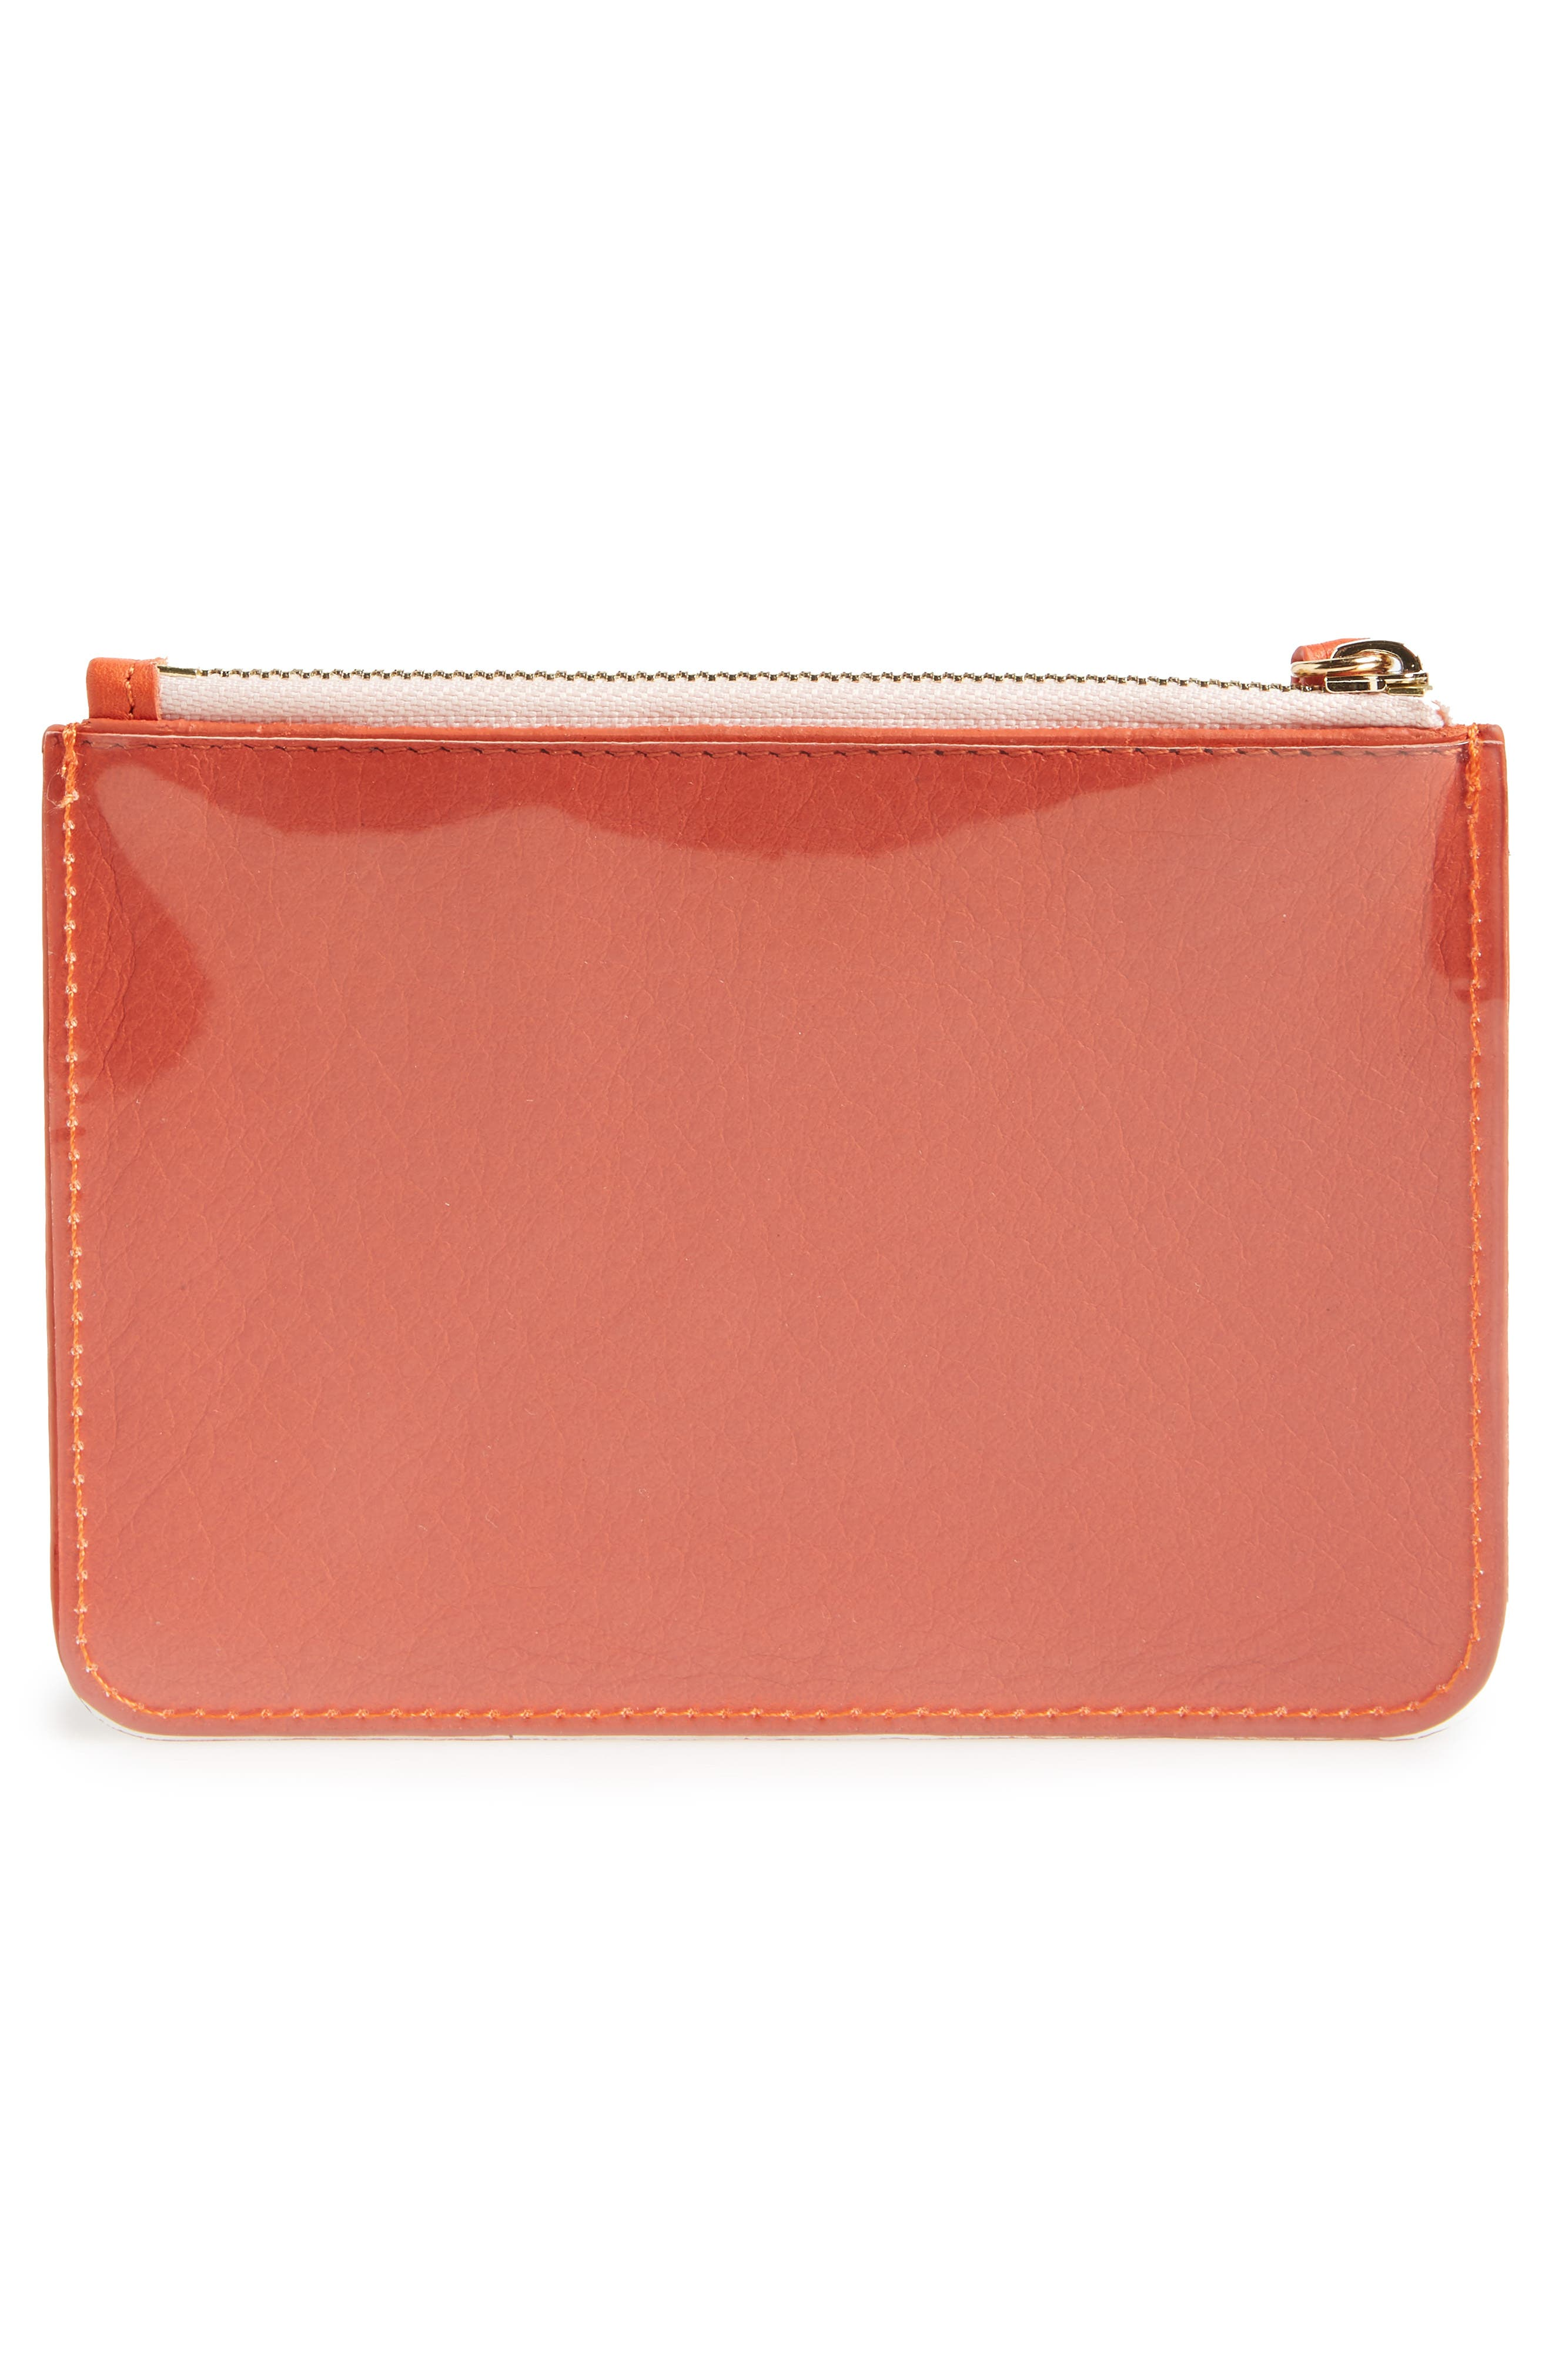 Privacy Leather Coin Pouch,                             Alternate thumbnail 4, color,                             Poppy